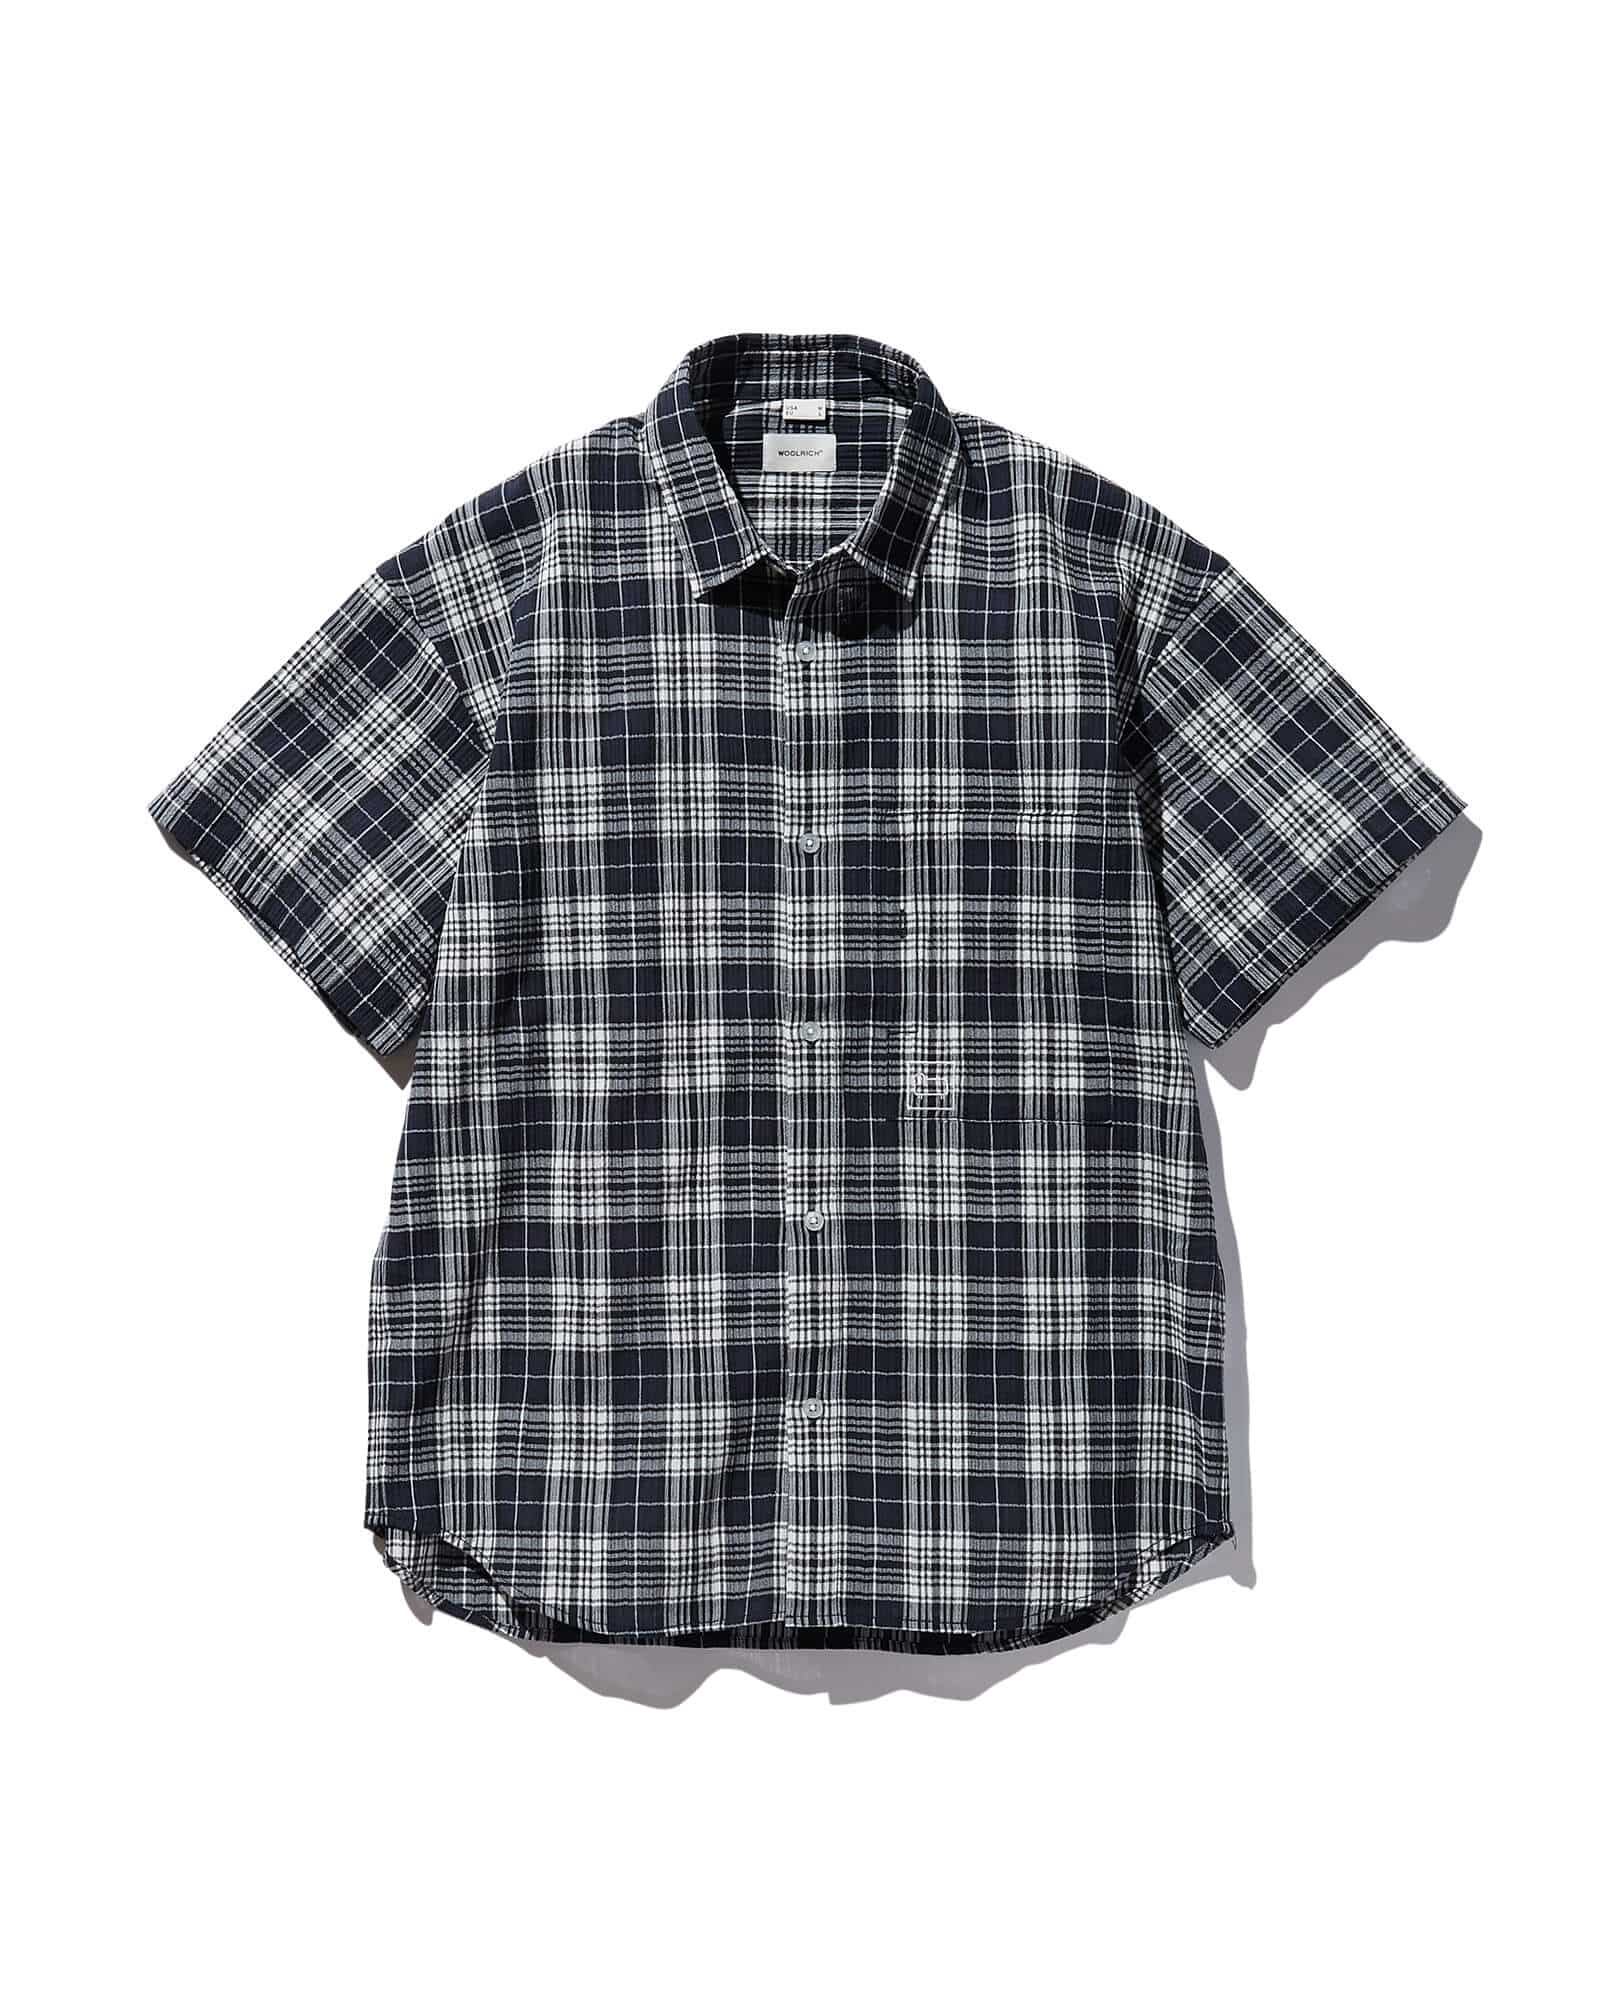 BAXTER LIGHTWEIGHT SHORT SLEEVE SHIRT